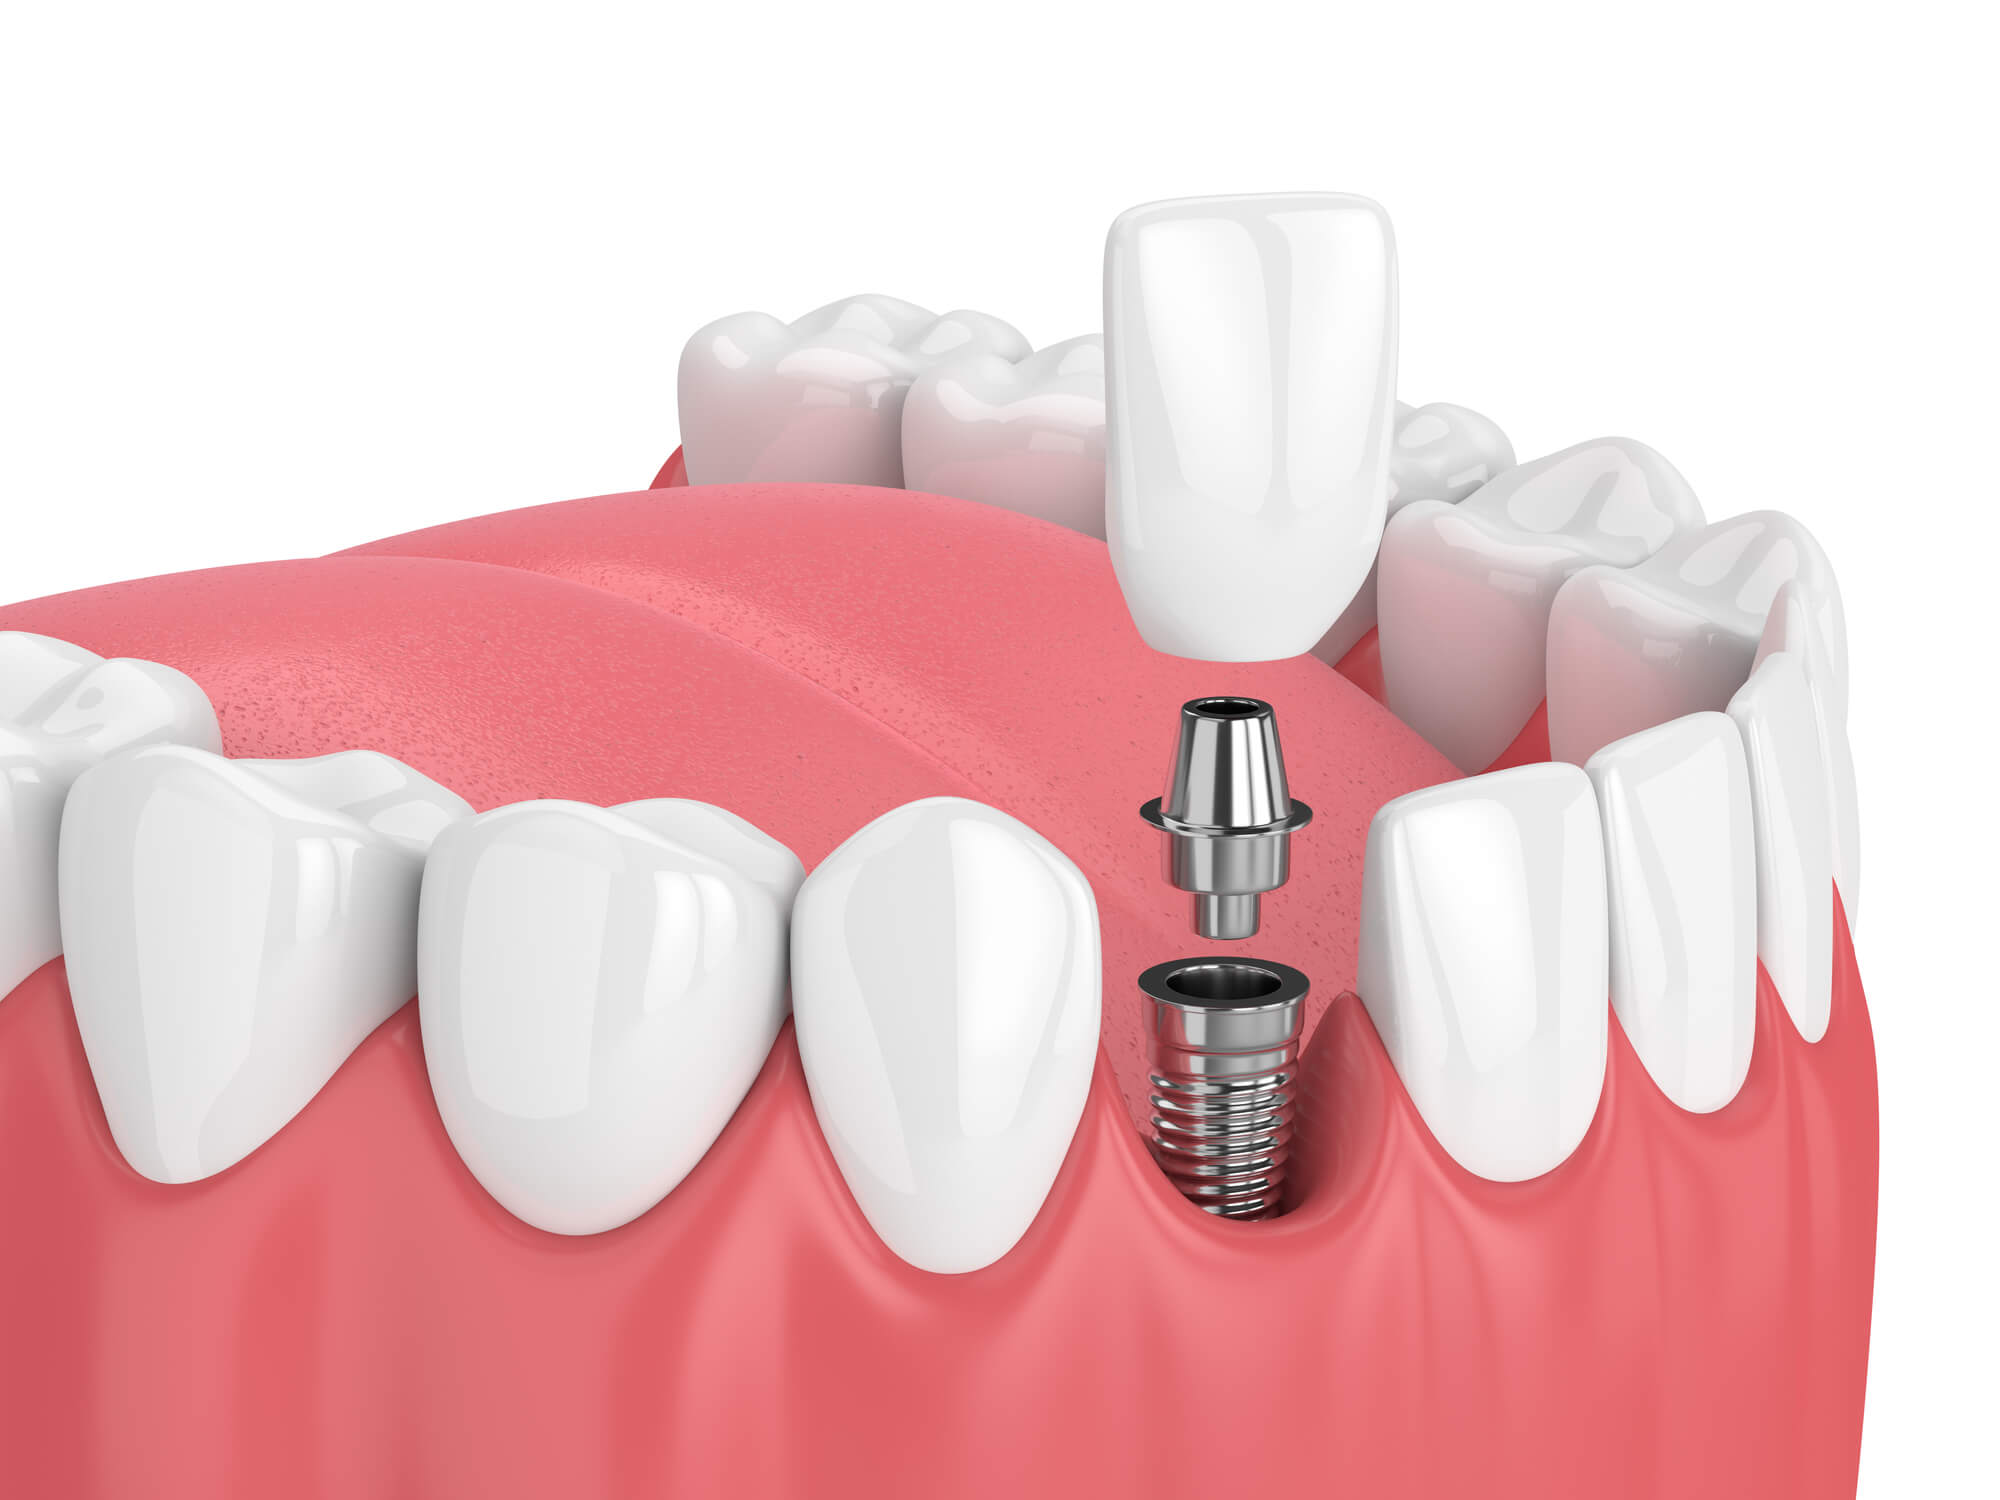 Where can I get Dental implants aventura fl?